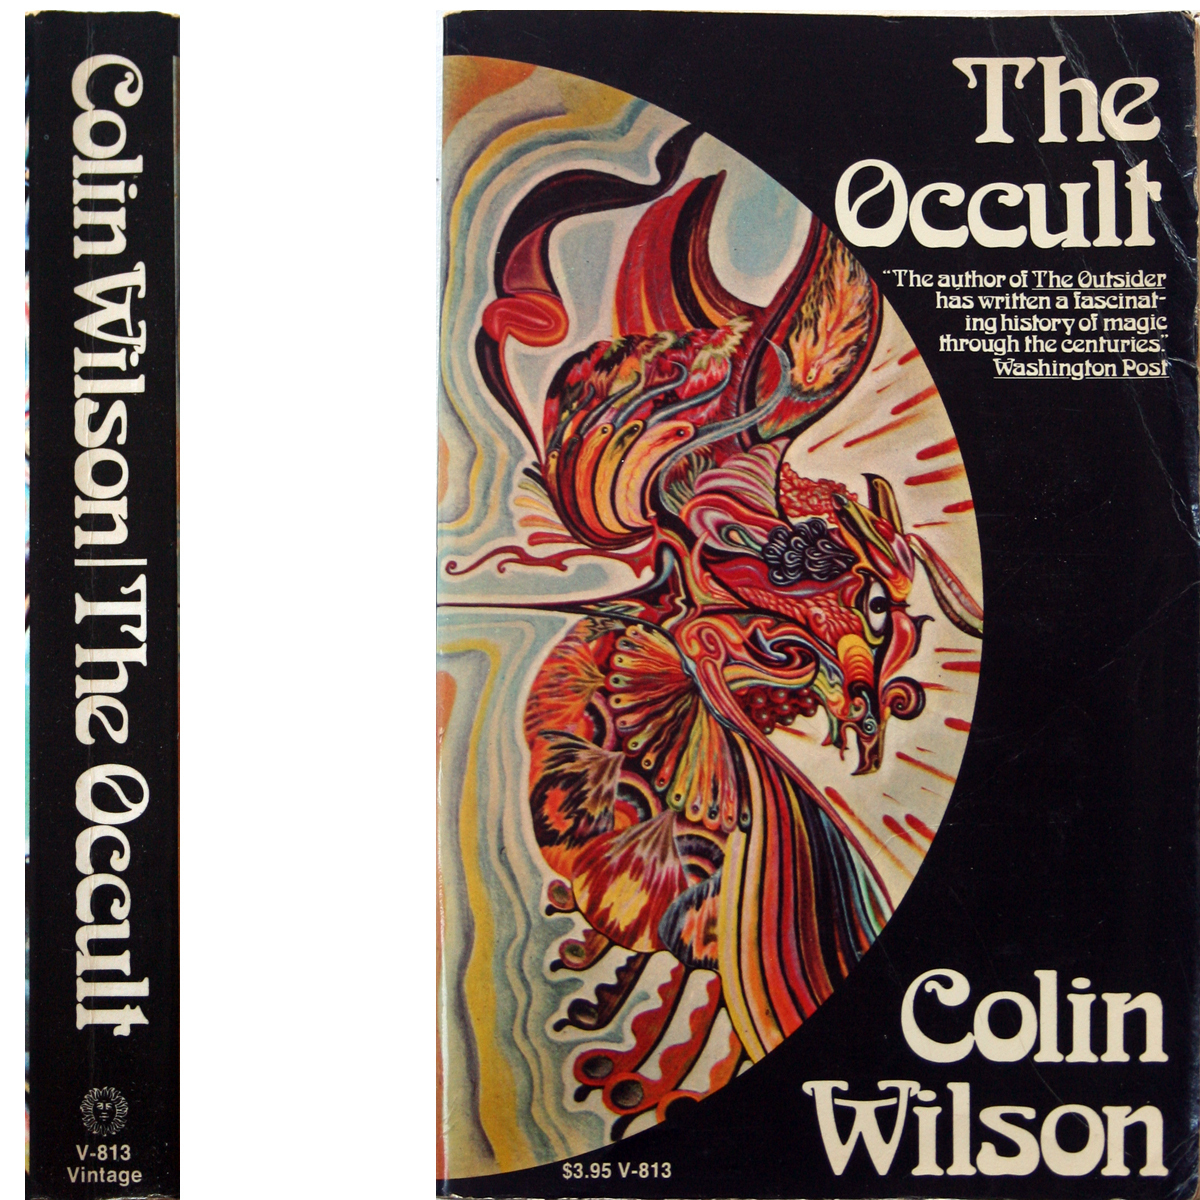 1973 The Occult - Colin Wilson